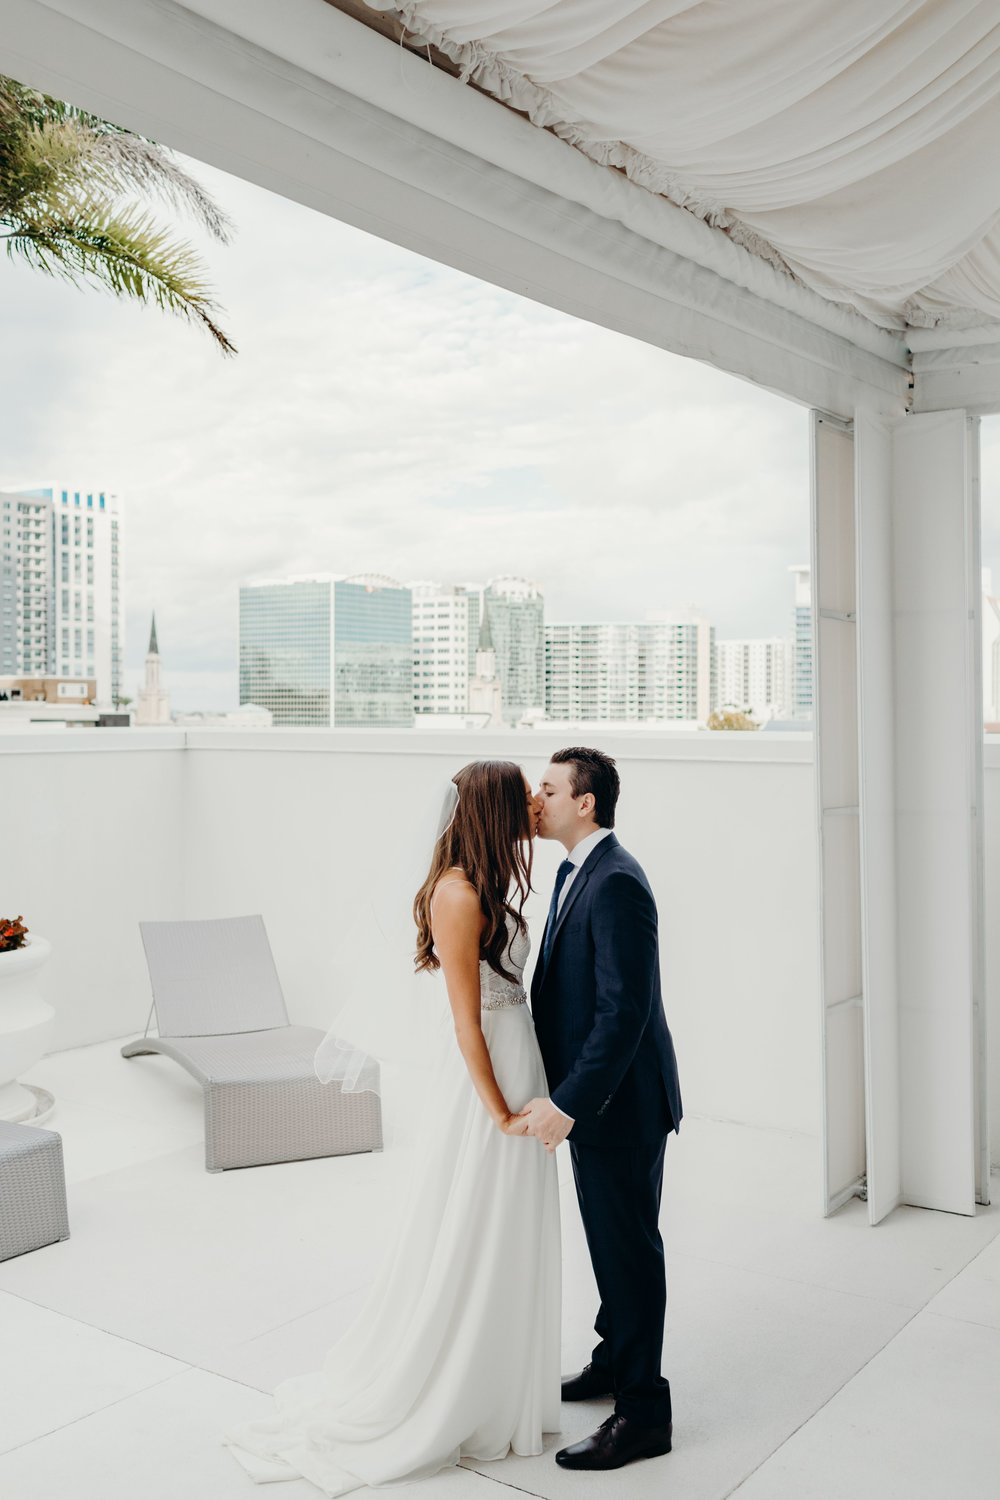 First Look | Nicholas and Jessica | Wedding | Downtown Orlando | Captured by Vanessa Boy |Vanessaboy.com (147 of 52)web.jpg